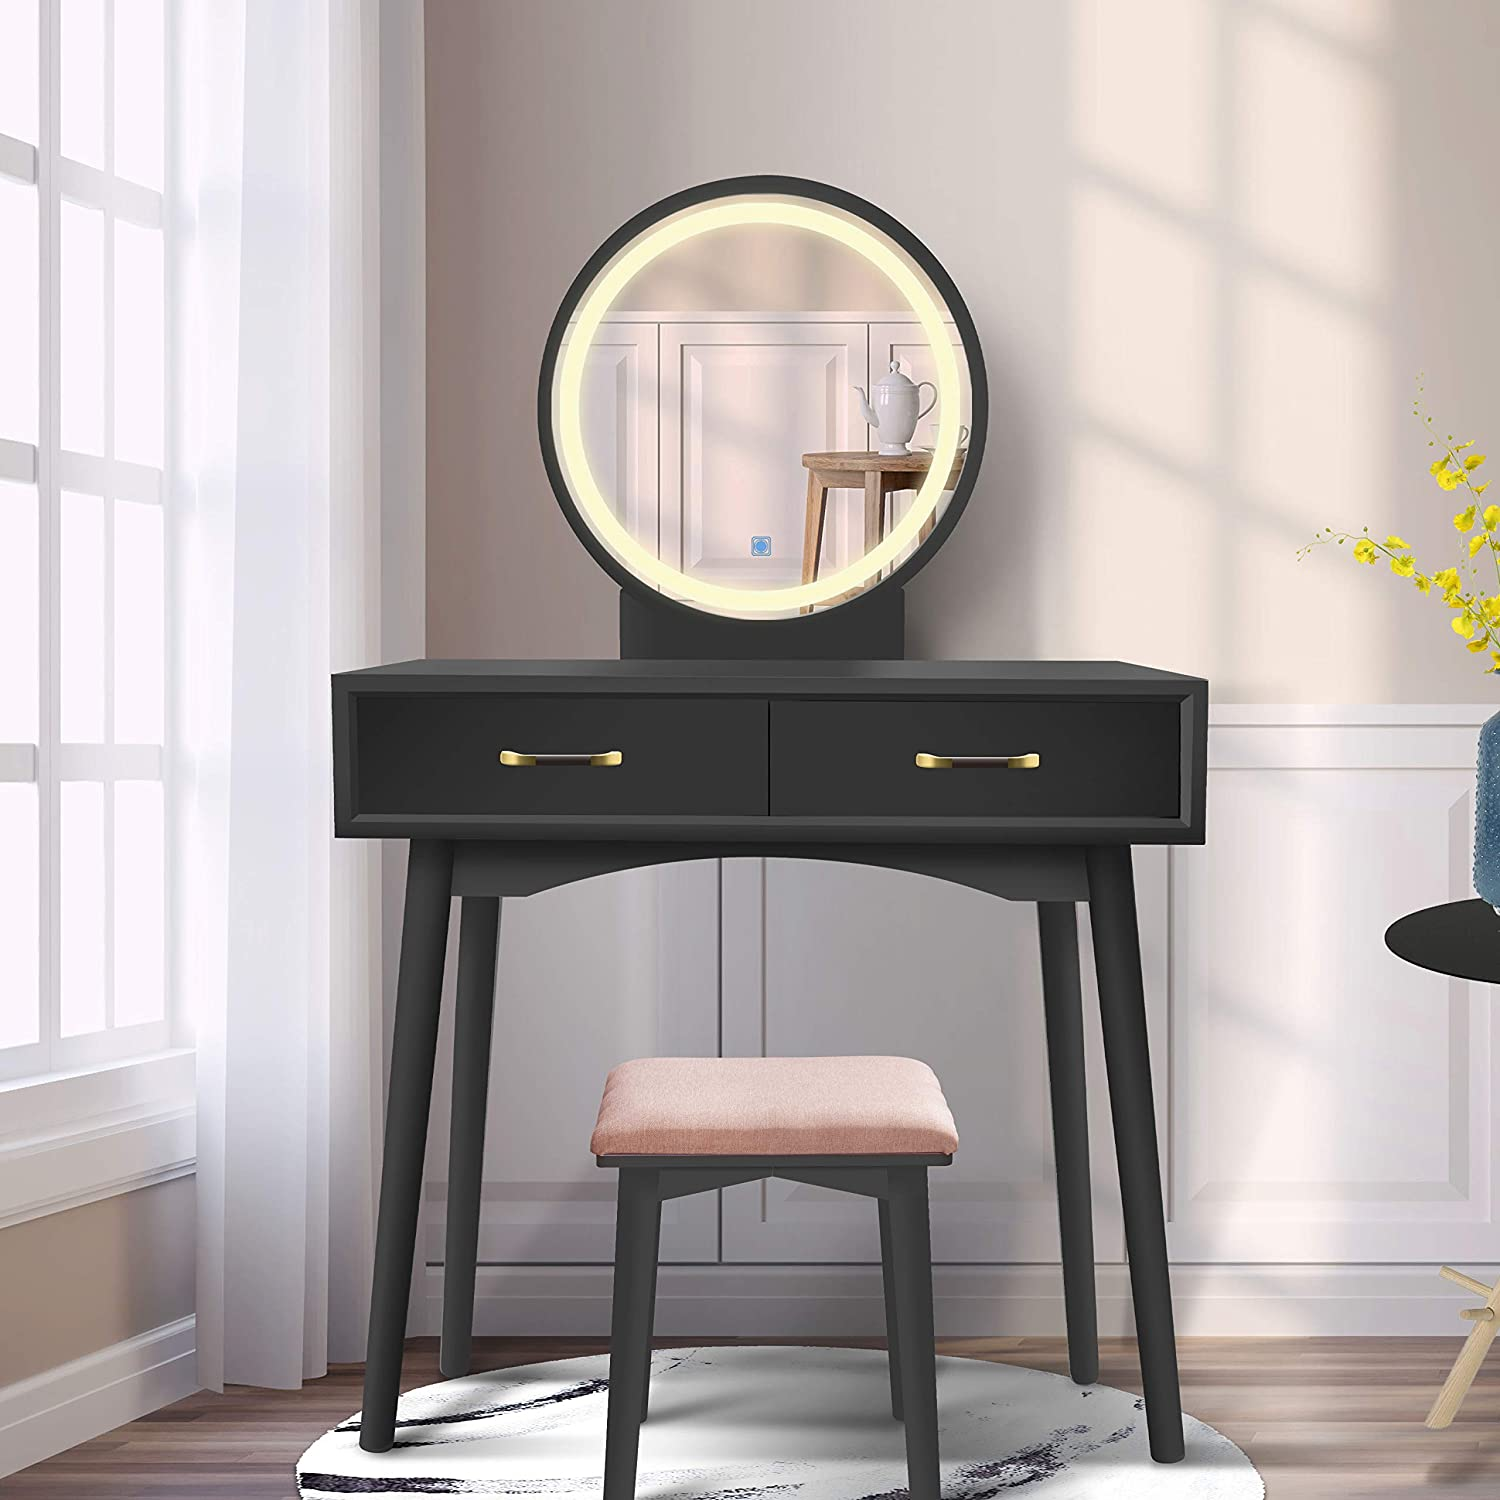 Vanity Table Set with Lighted LED Touch Screen Dimming Round Mirror,Makeup Dressing Table with 2 Sliding Drawers, 1 Cushioned Stool for Bedroom, Bathroom (Black)